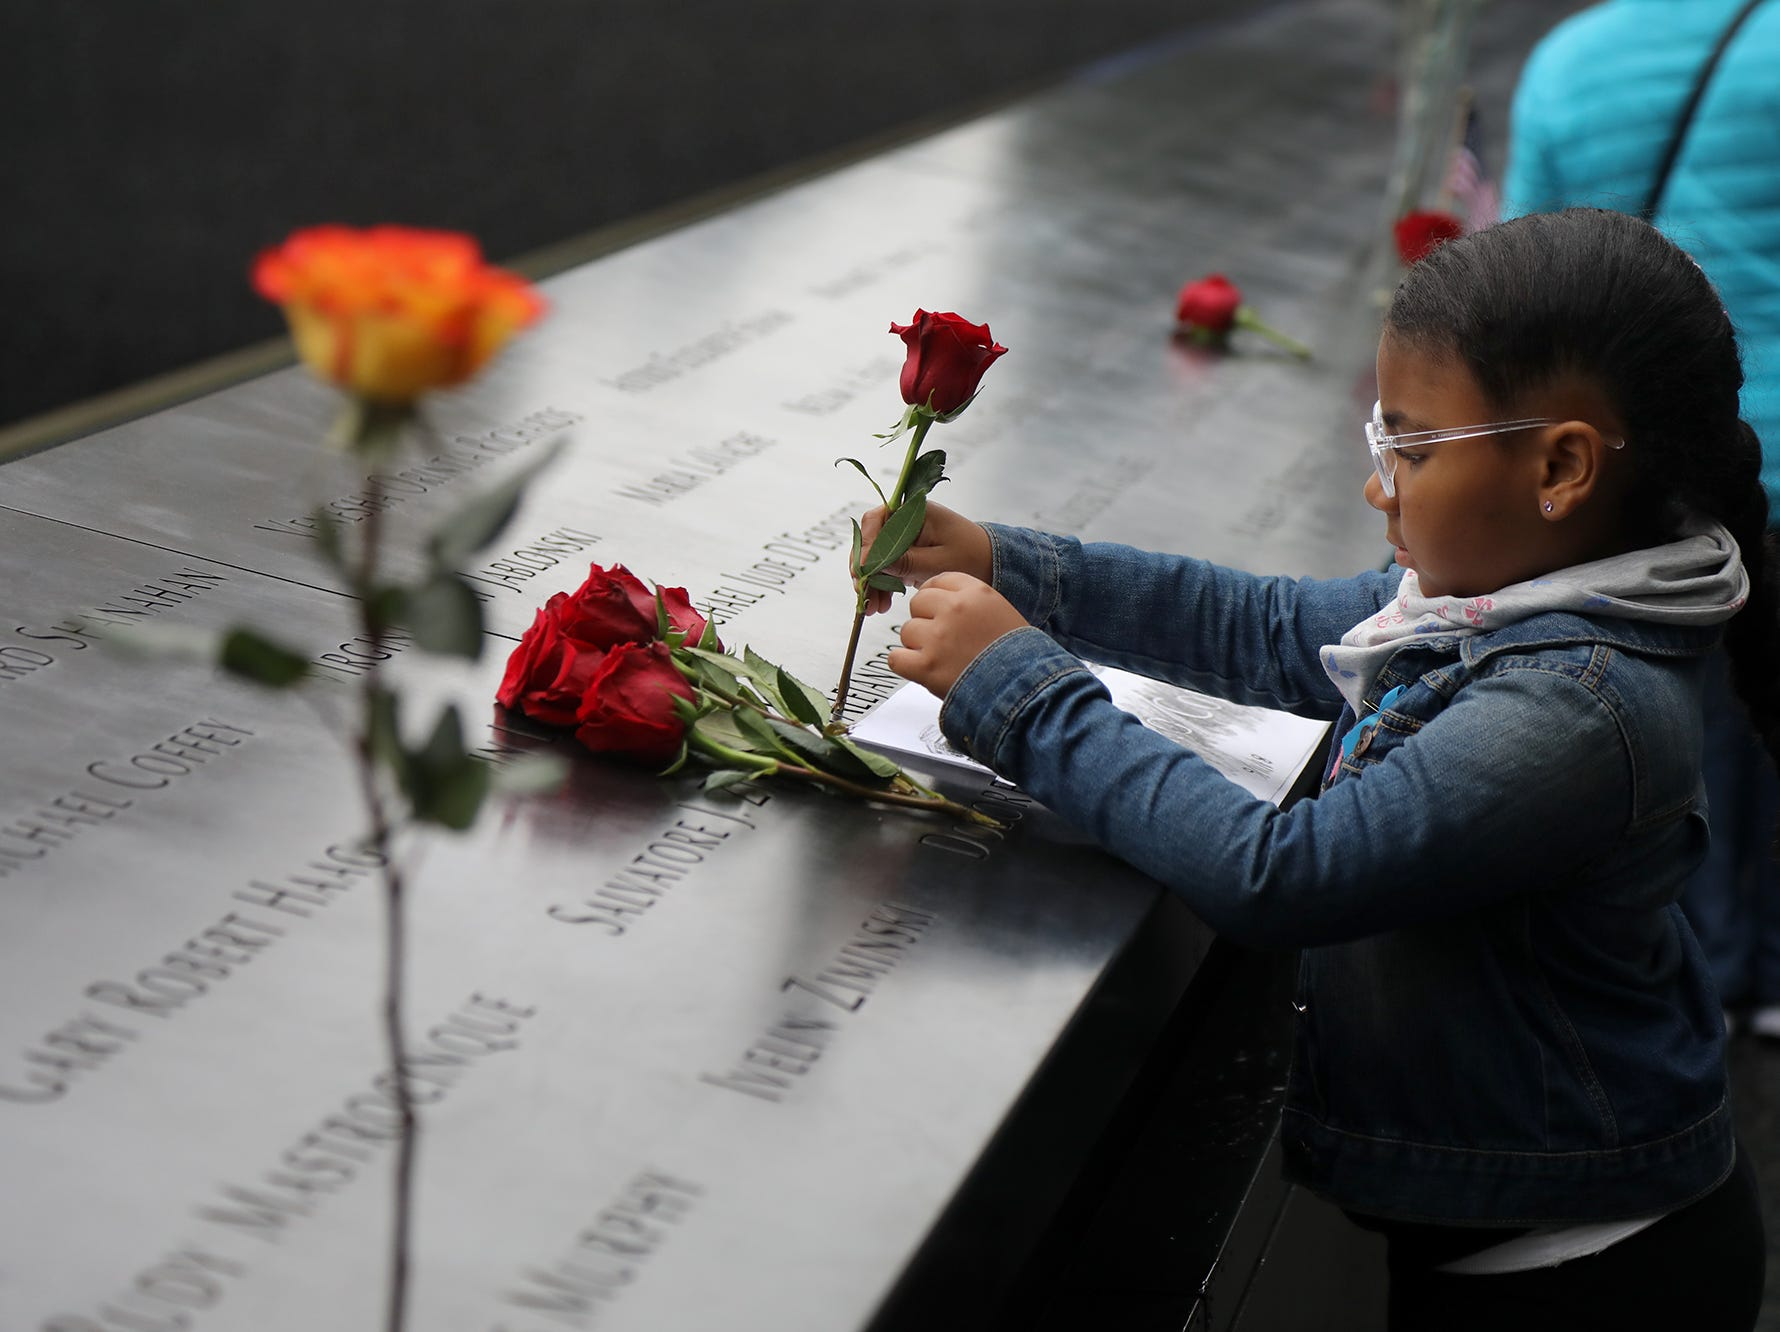 Emma Cordero 8 of the Bronx puts a flower in the name of her uncle Alejandro Cordero during ceremonies at the National September 11 Memorial observing the 17th anniversary of the attacks that killed people in Manhattan, the Pentagon, Flight 93 and honoring those who died in the 1993 World Trade Center bombing.